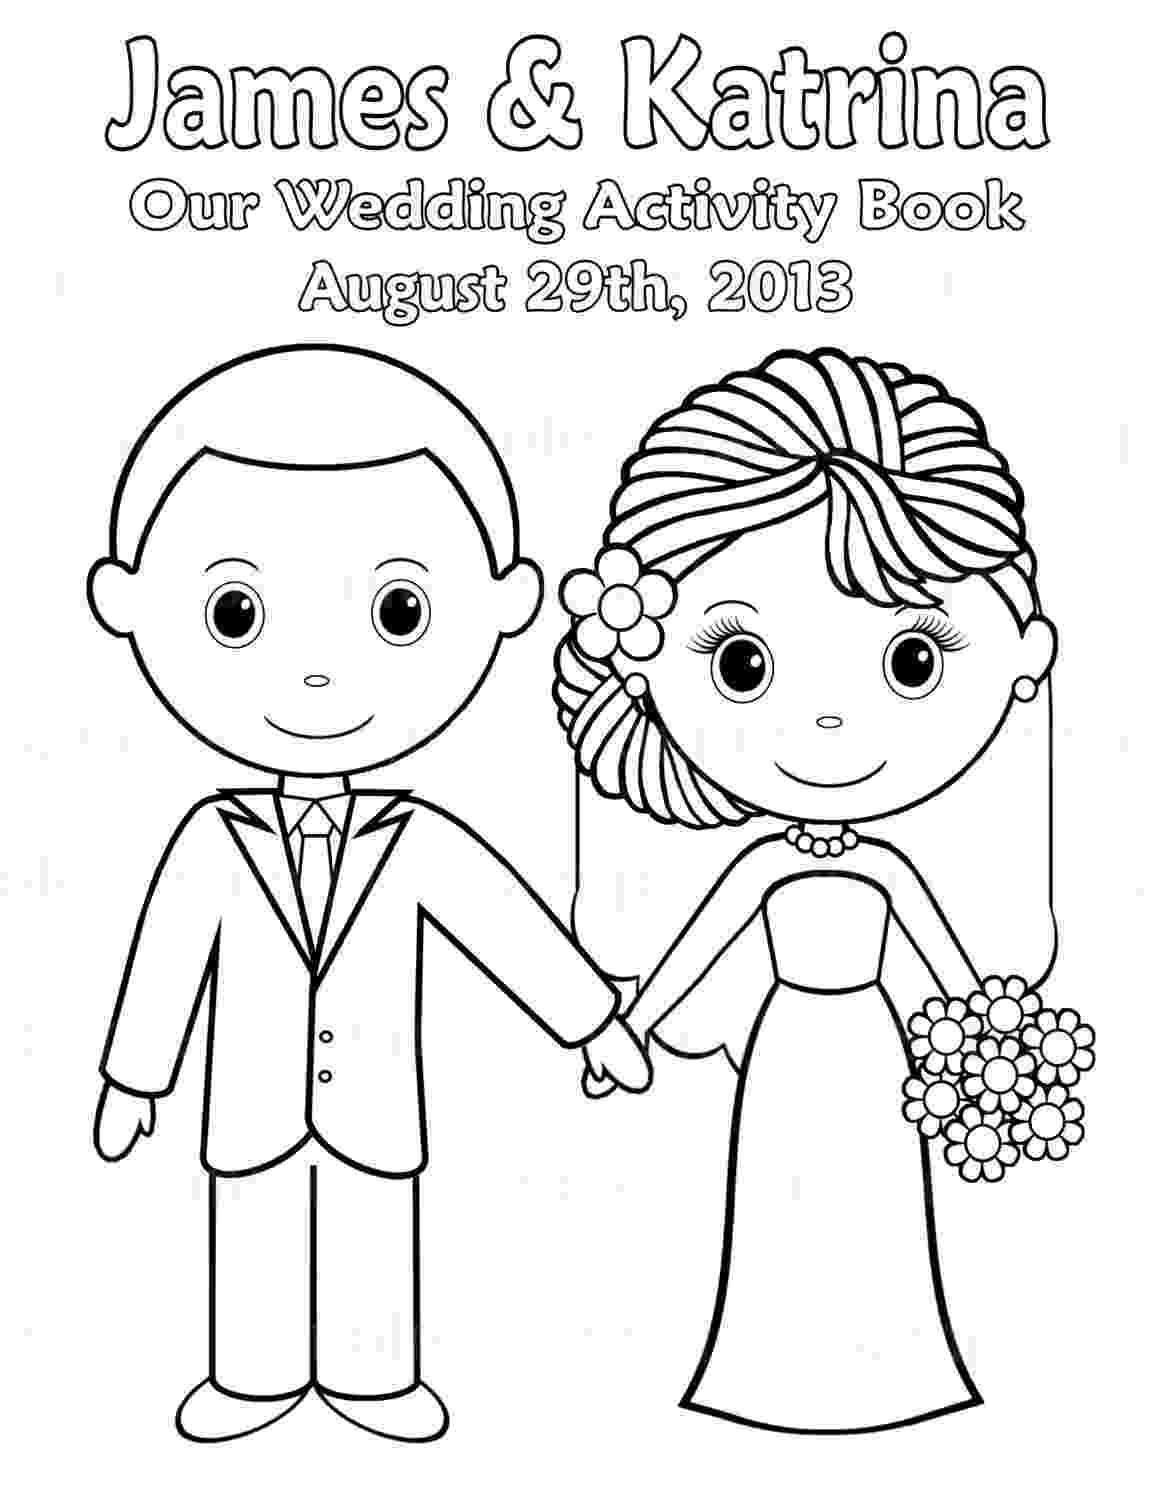 wedding coloring book printable personalized wedding coloring activity book favor wedding book coloring